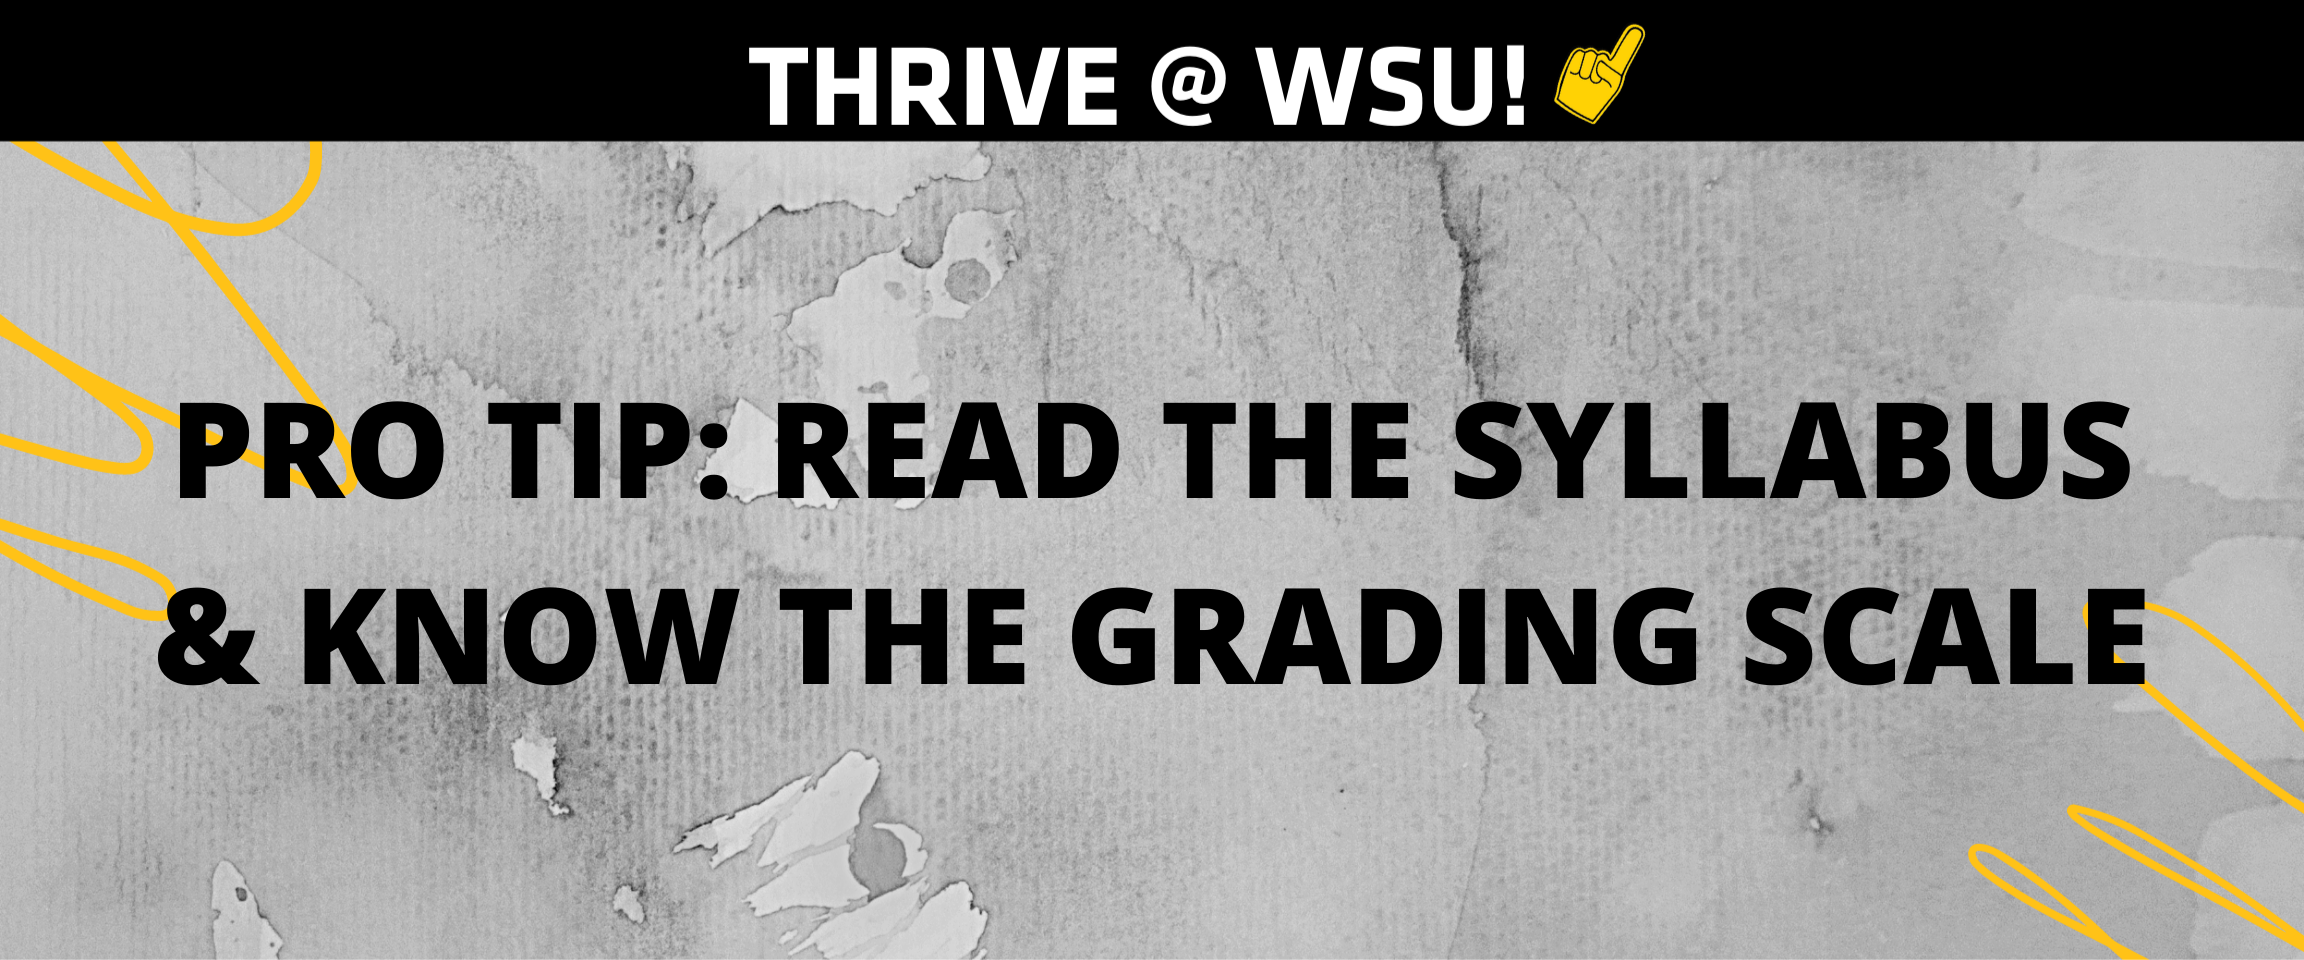 Pro Tip: Read the Syllabus and Know the Grading Scale